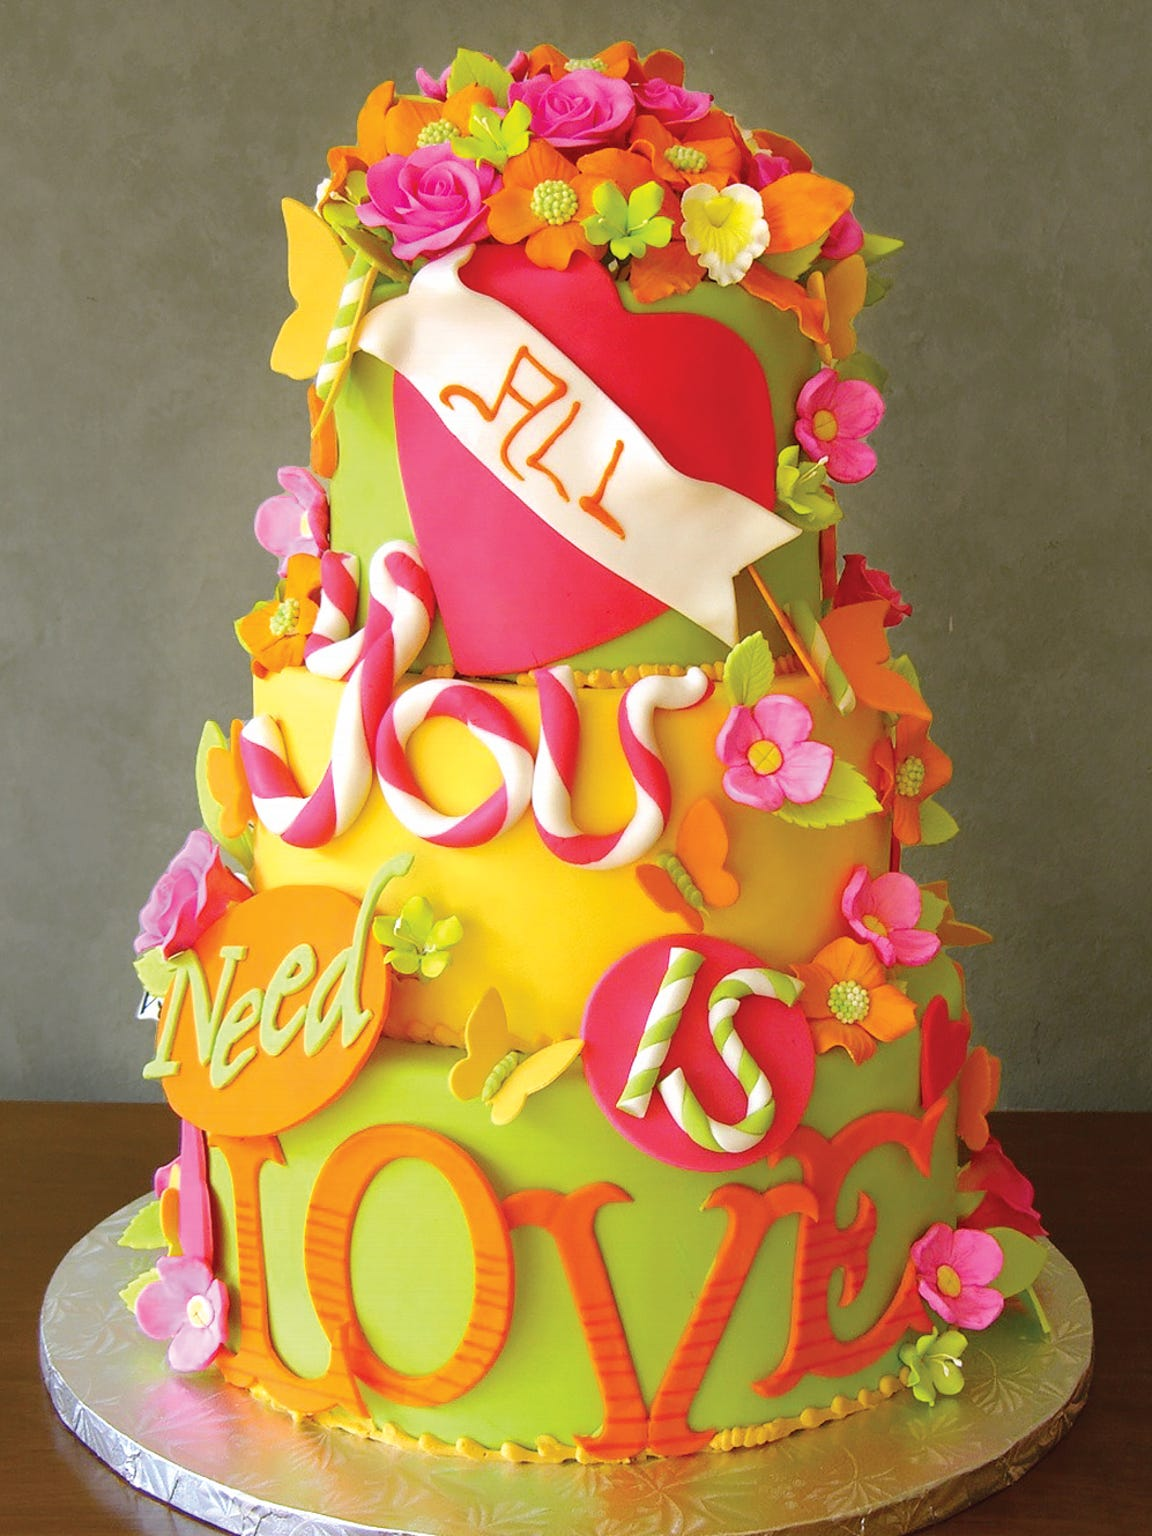 Wedding cake from Premier Pastry.